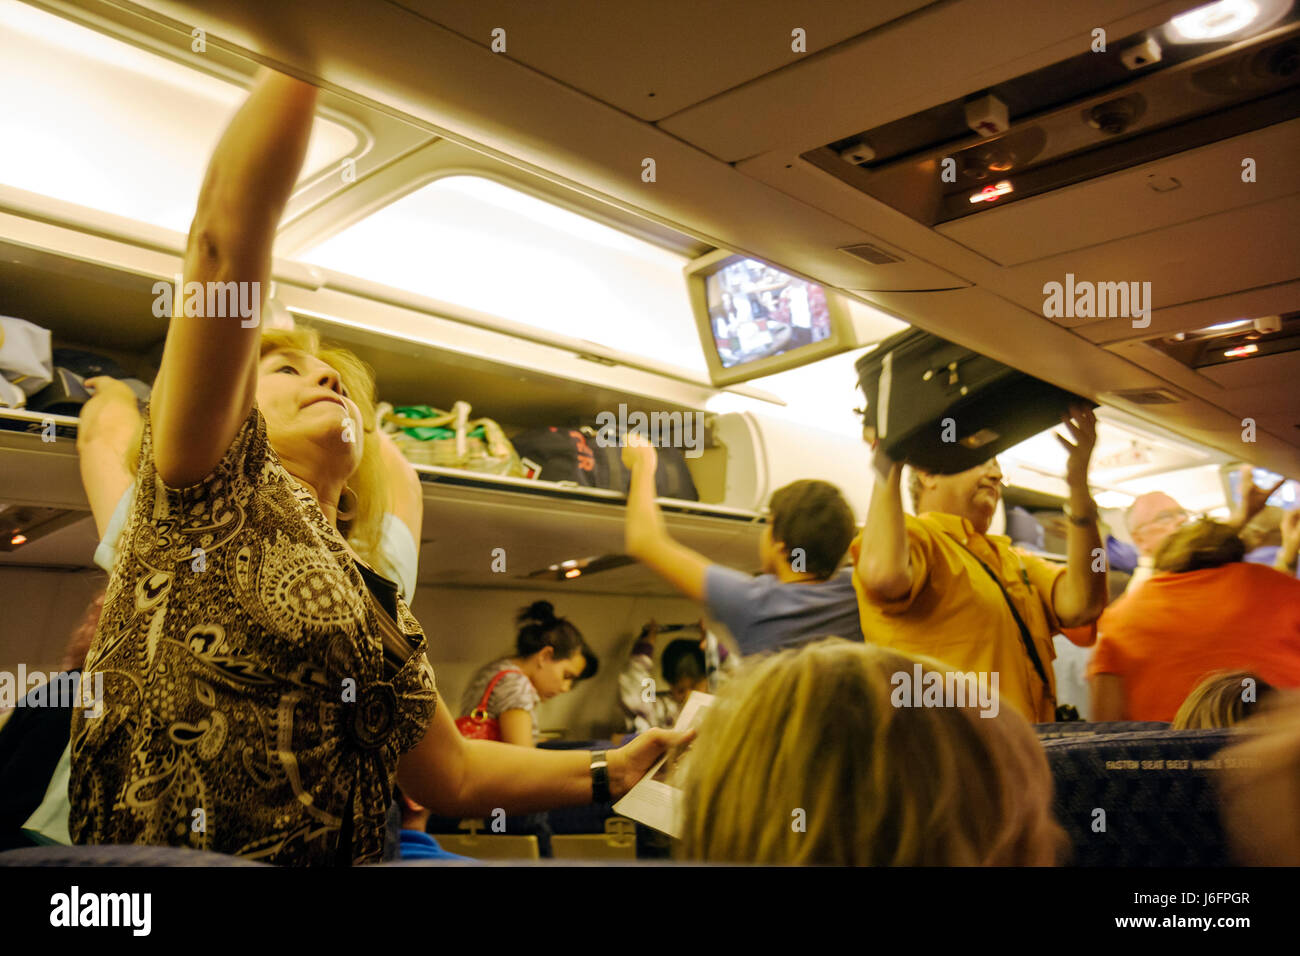 Chicago Illinois O'Hare International Airport American Airlines woman man passenger jet aisle overhead compartment - Stock Image